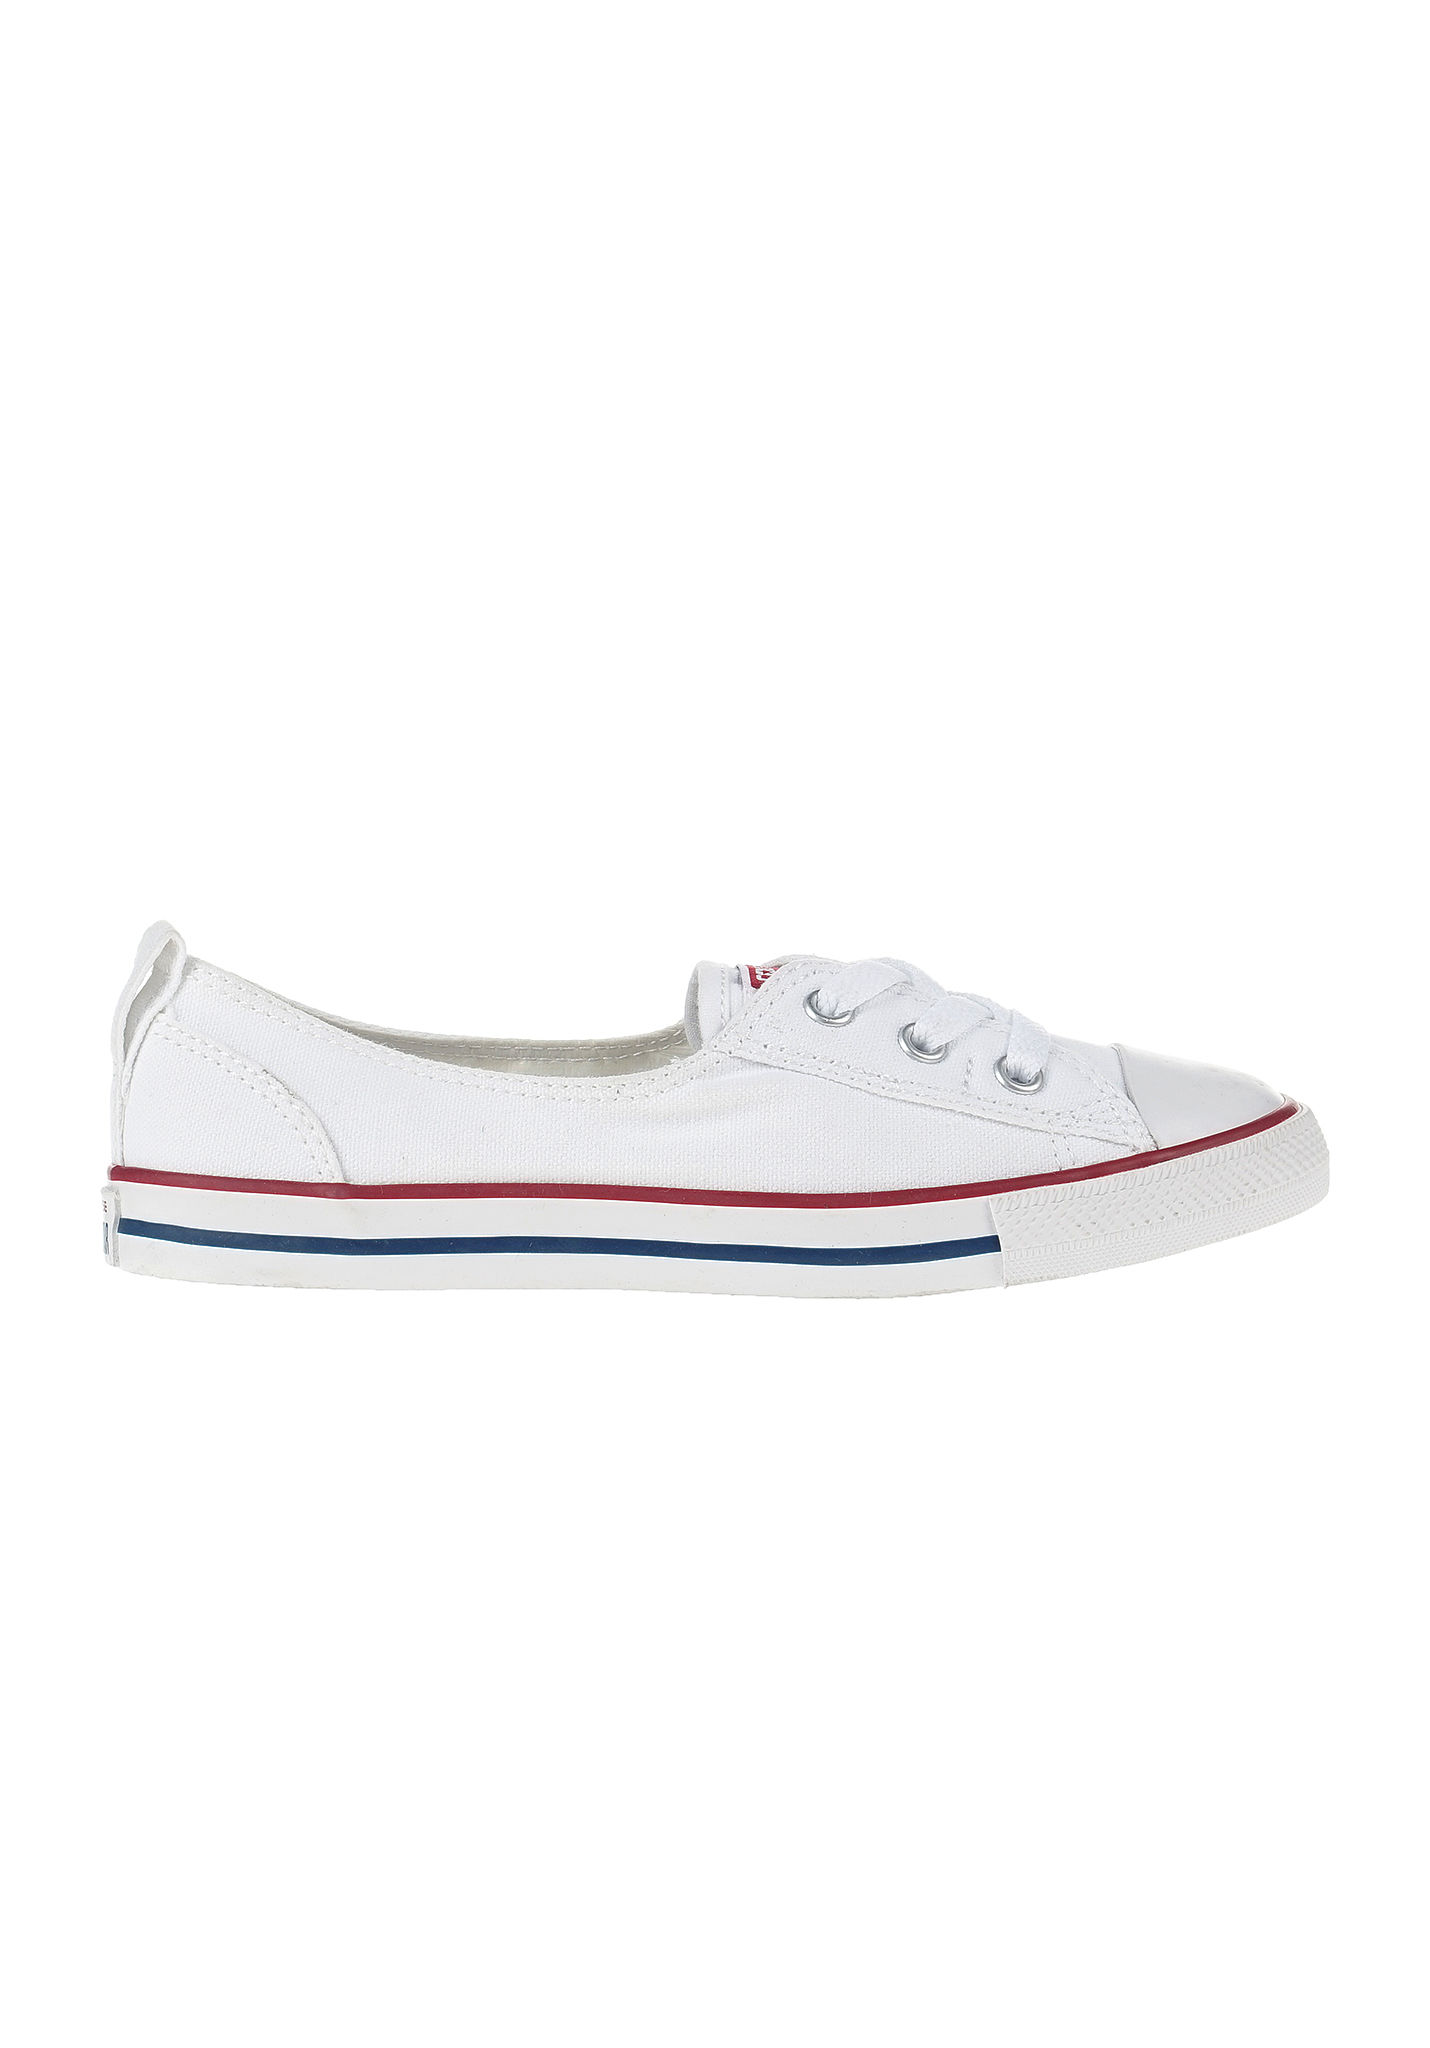 862d493676 Converse Chuck Taylor All Star Ballet Lace - Sneaker für Damen - Weiß -  Planet Sports